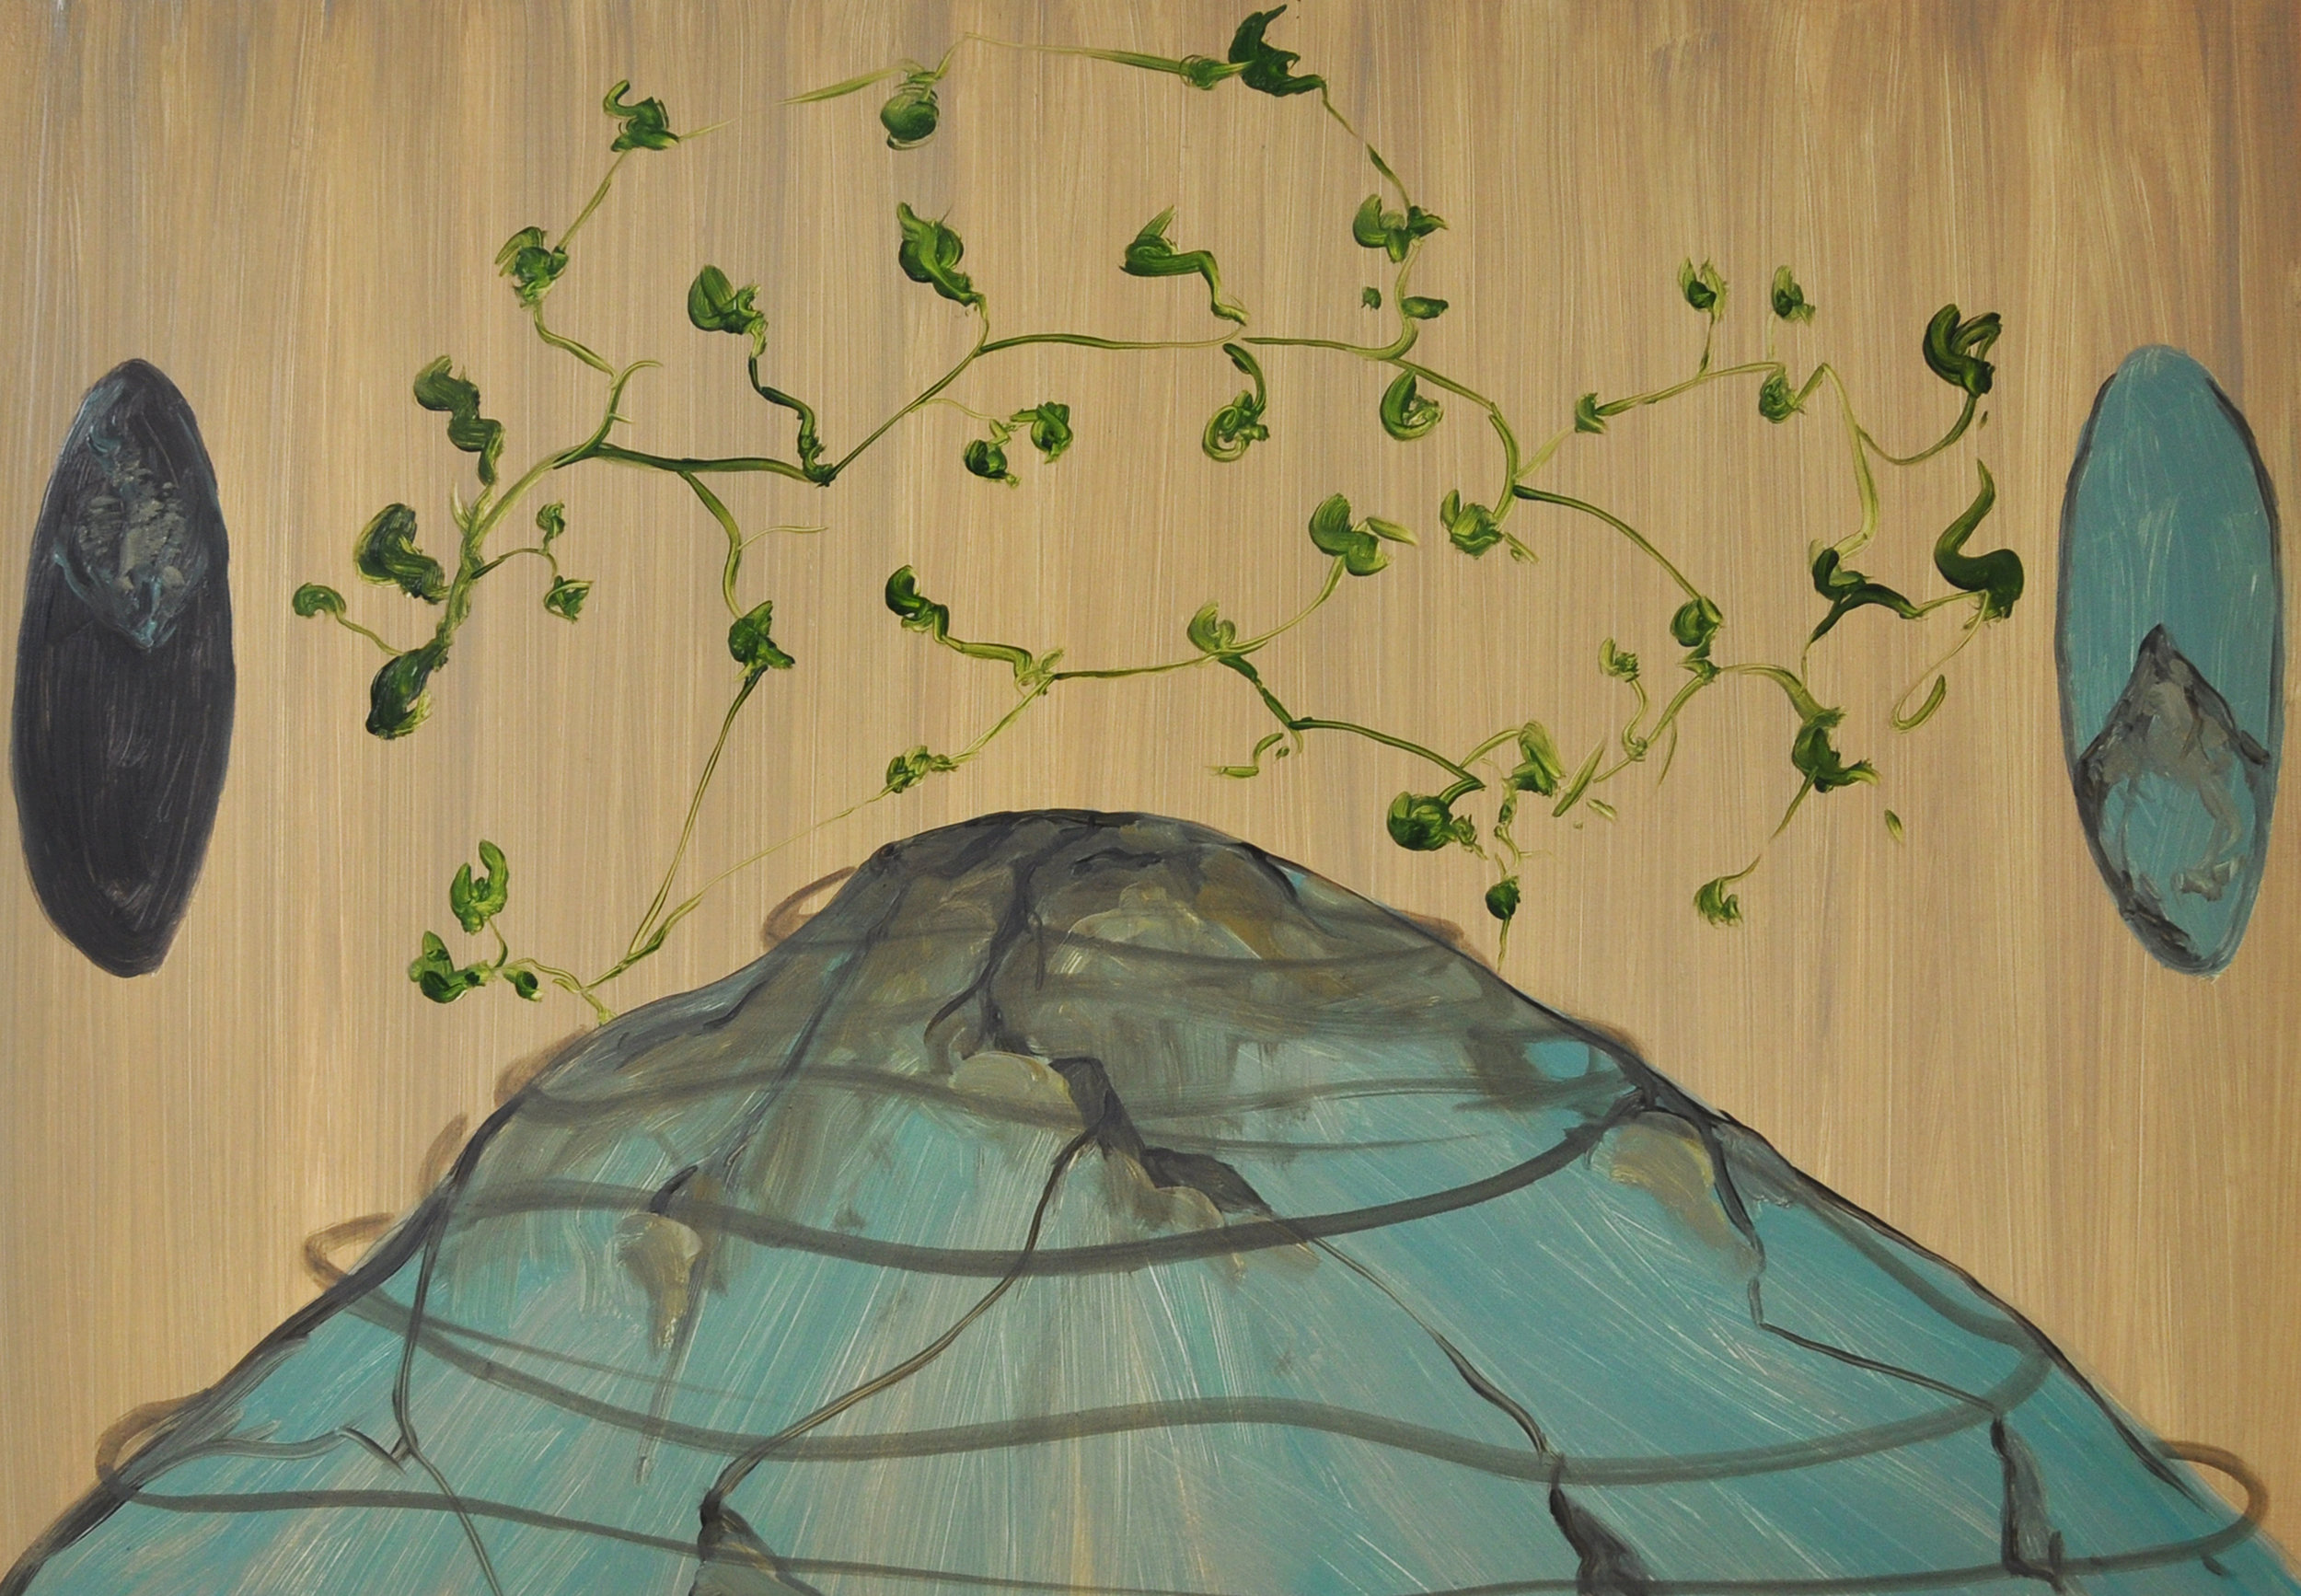 Surface to Surface, 2010, Oil on cotton, 50 x 70 cm